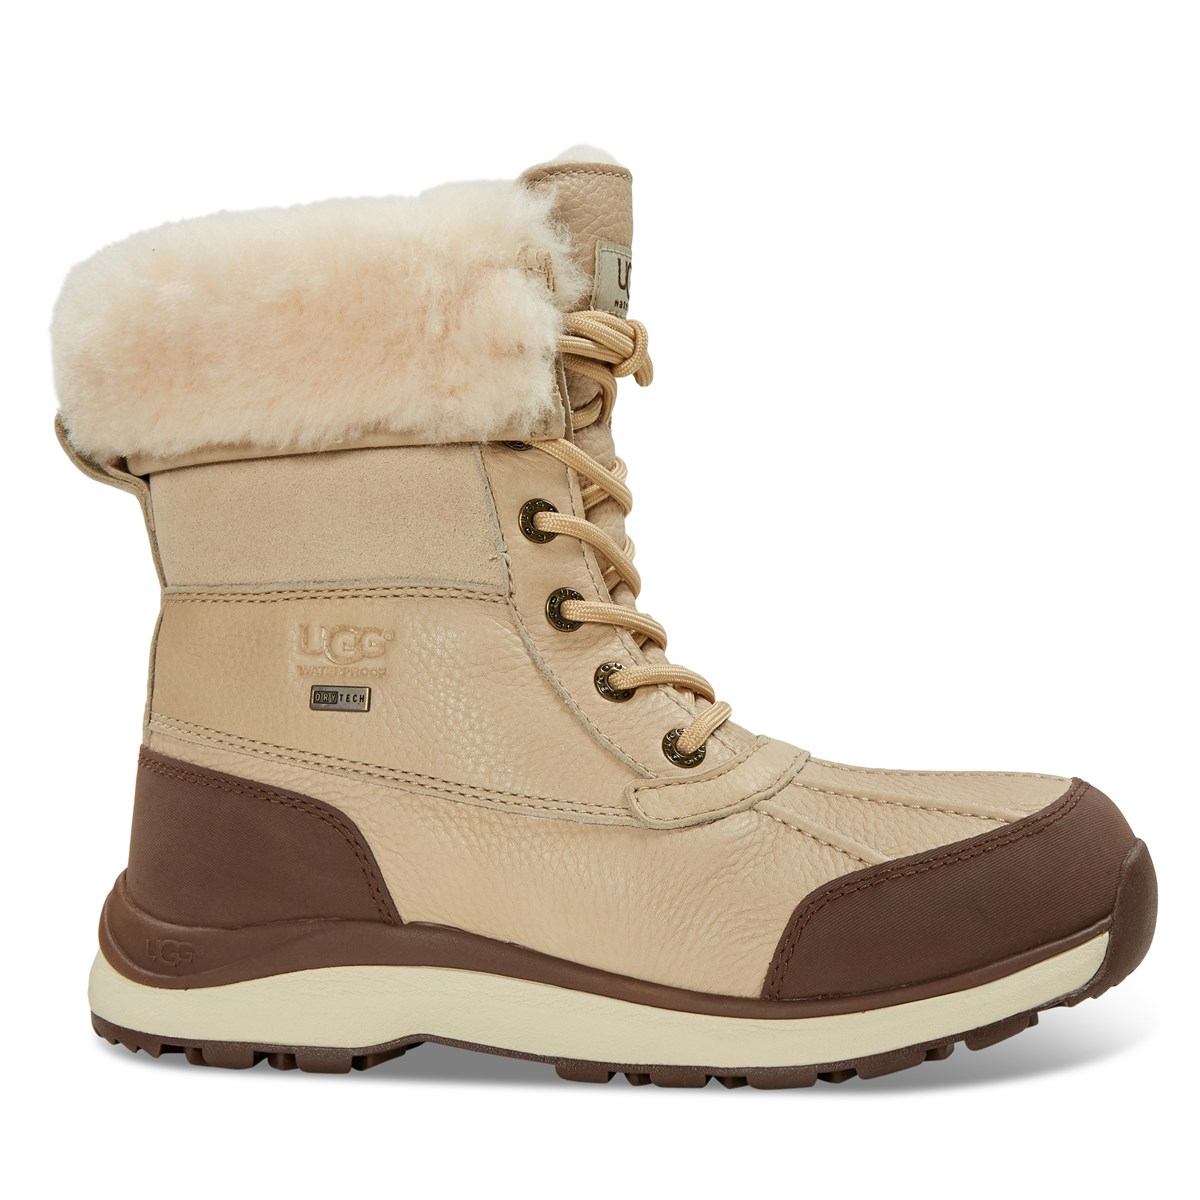 super cute details for online store Women's Adirondack III Boots in Sand